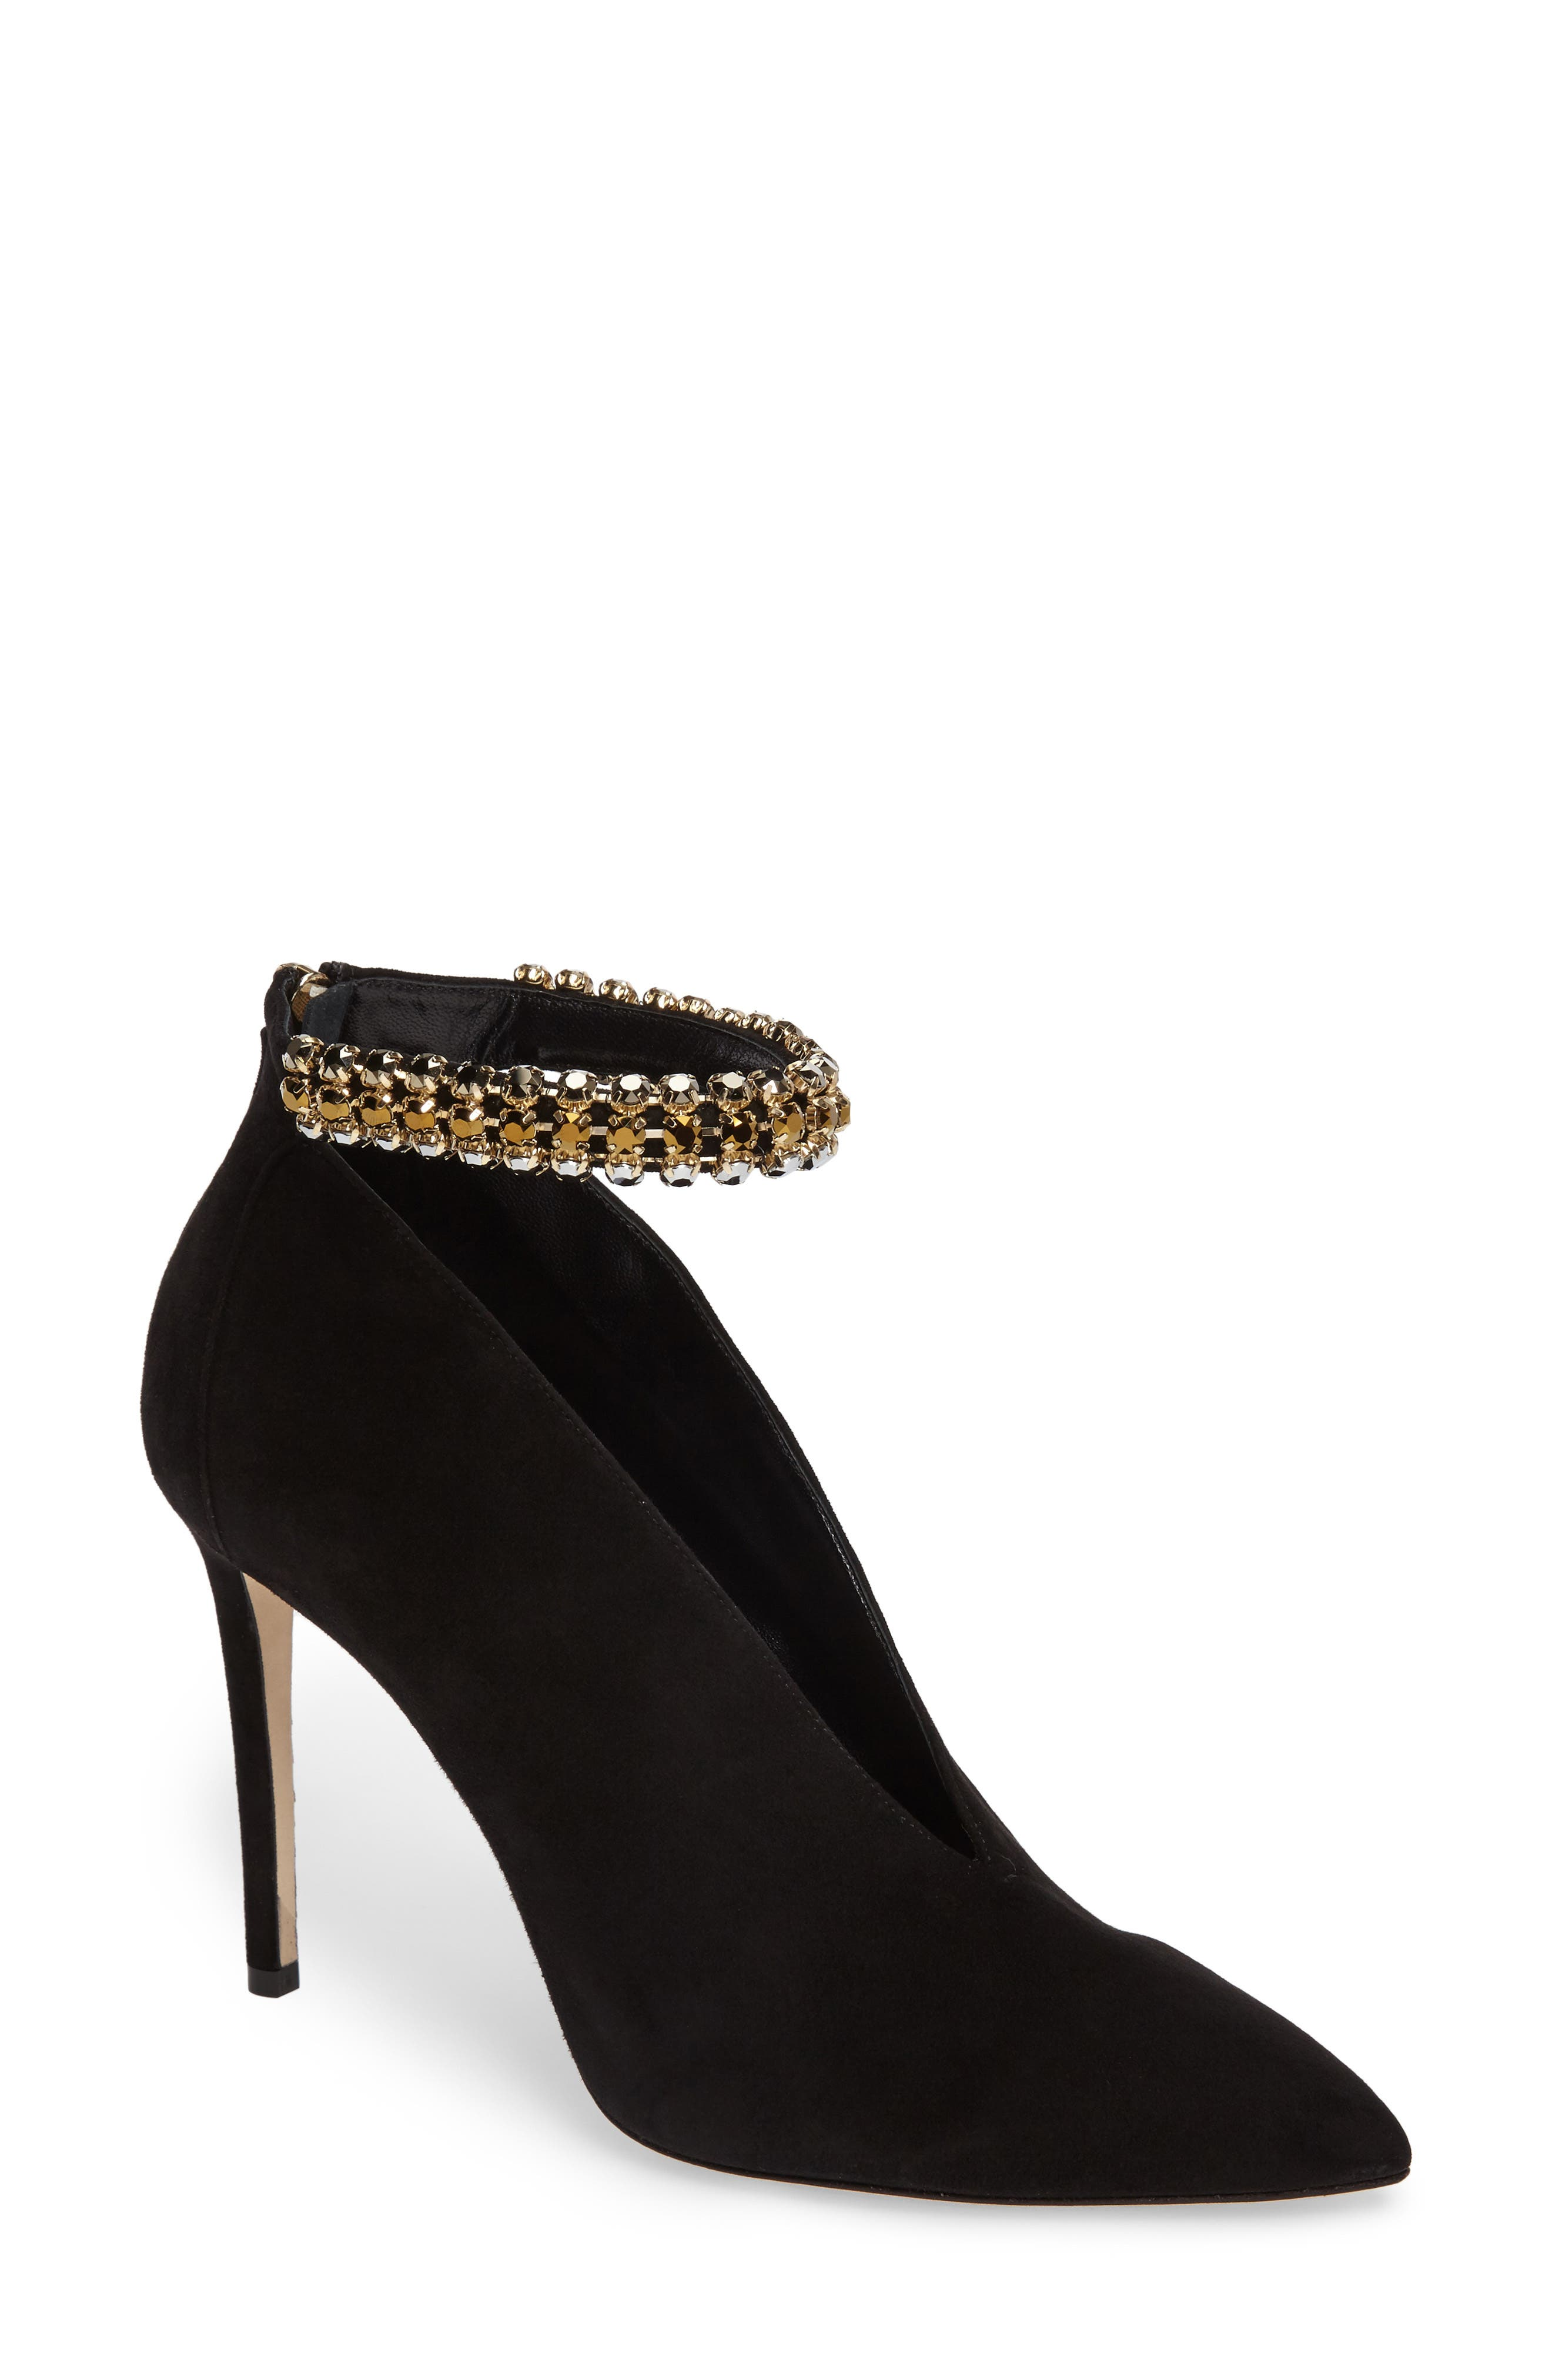 Alternate Image 1 Selected - Jimmy Choo Lux Embellished Ankle Strap Bootie (Women)